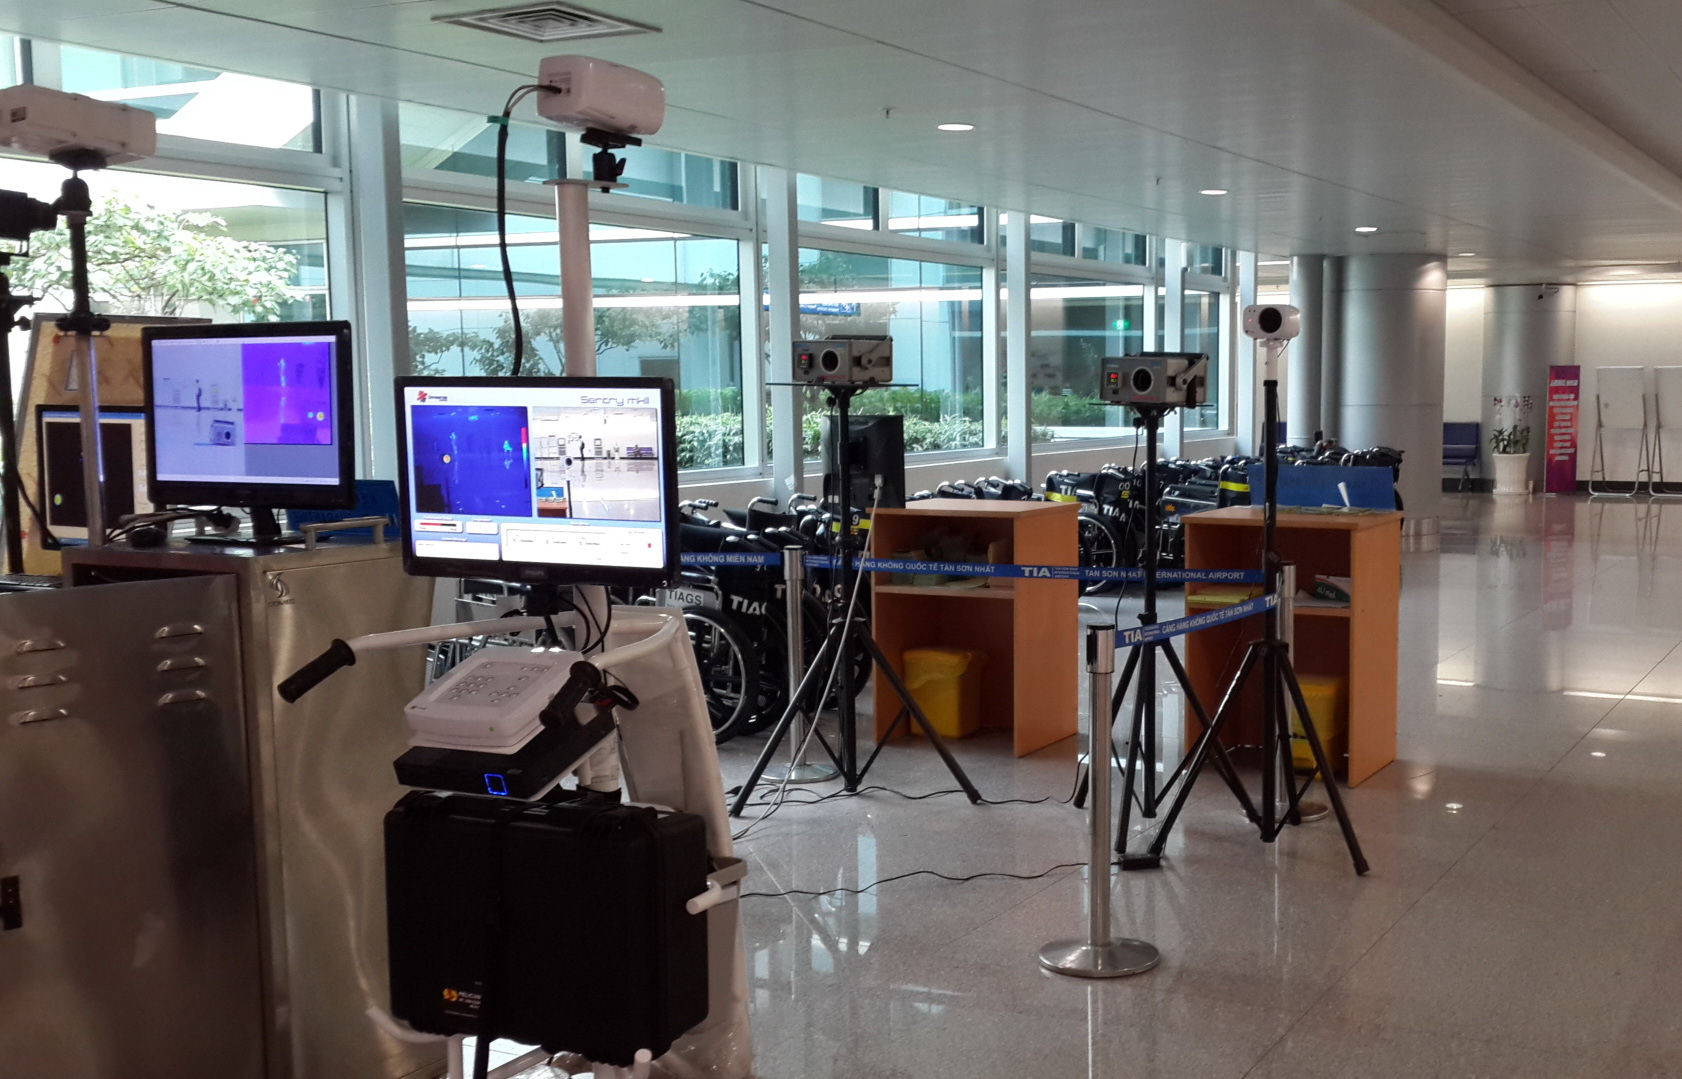 Full-body temperature scanners are installed at Tan Son Nhat International Airport in Ho Chi Minh City. Photo: Van Hao / Tuoi Tre